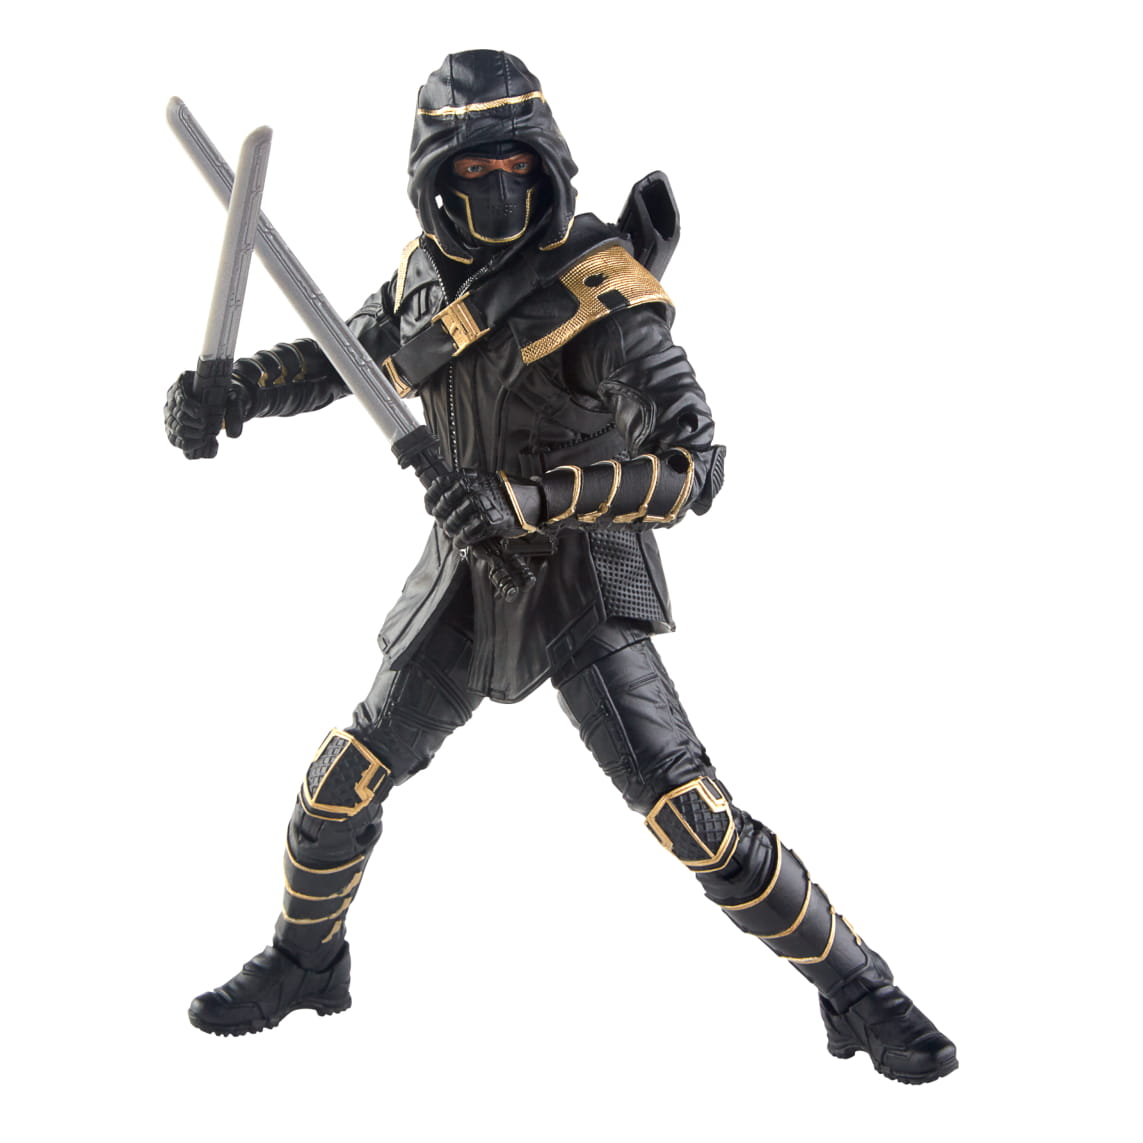 Avengers Endgame Ronin Marvel Legends Figure by Hasbro